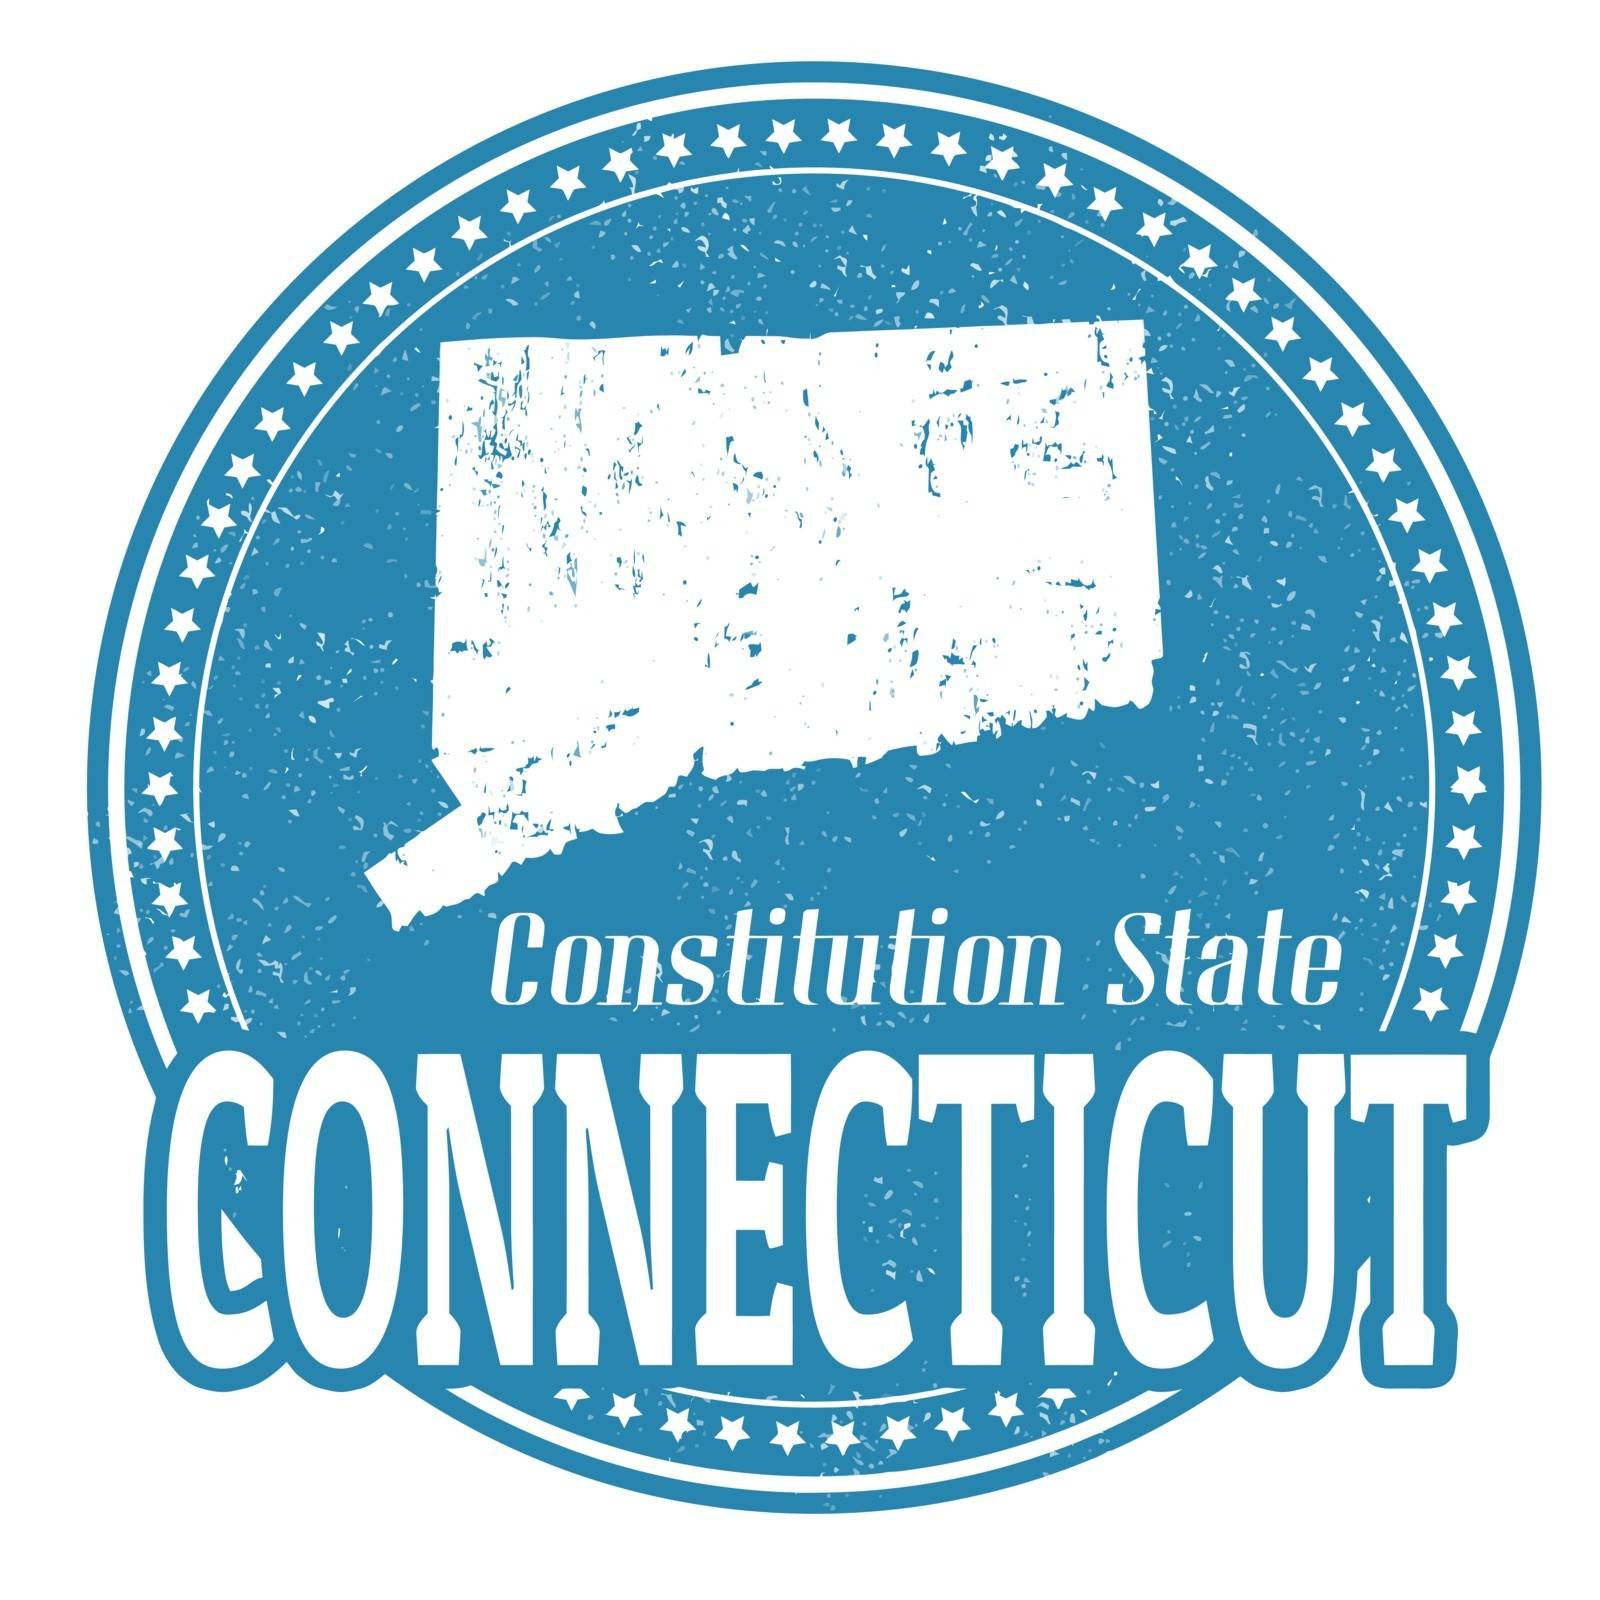 Vintage stamp with text Constitution State written inside and map of Connecticut, vector illustration